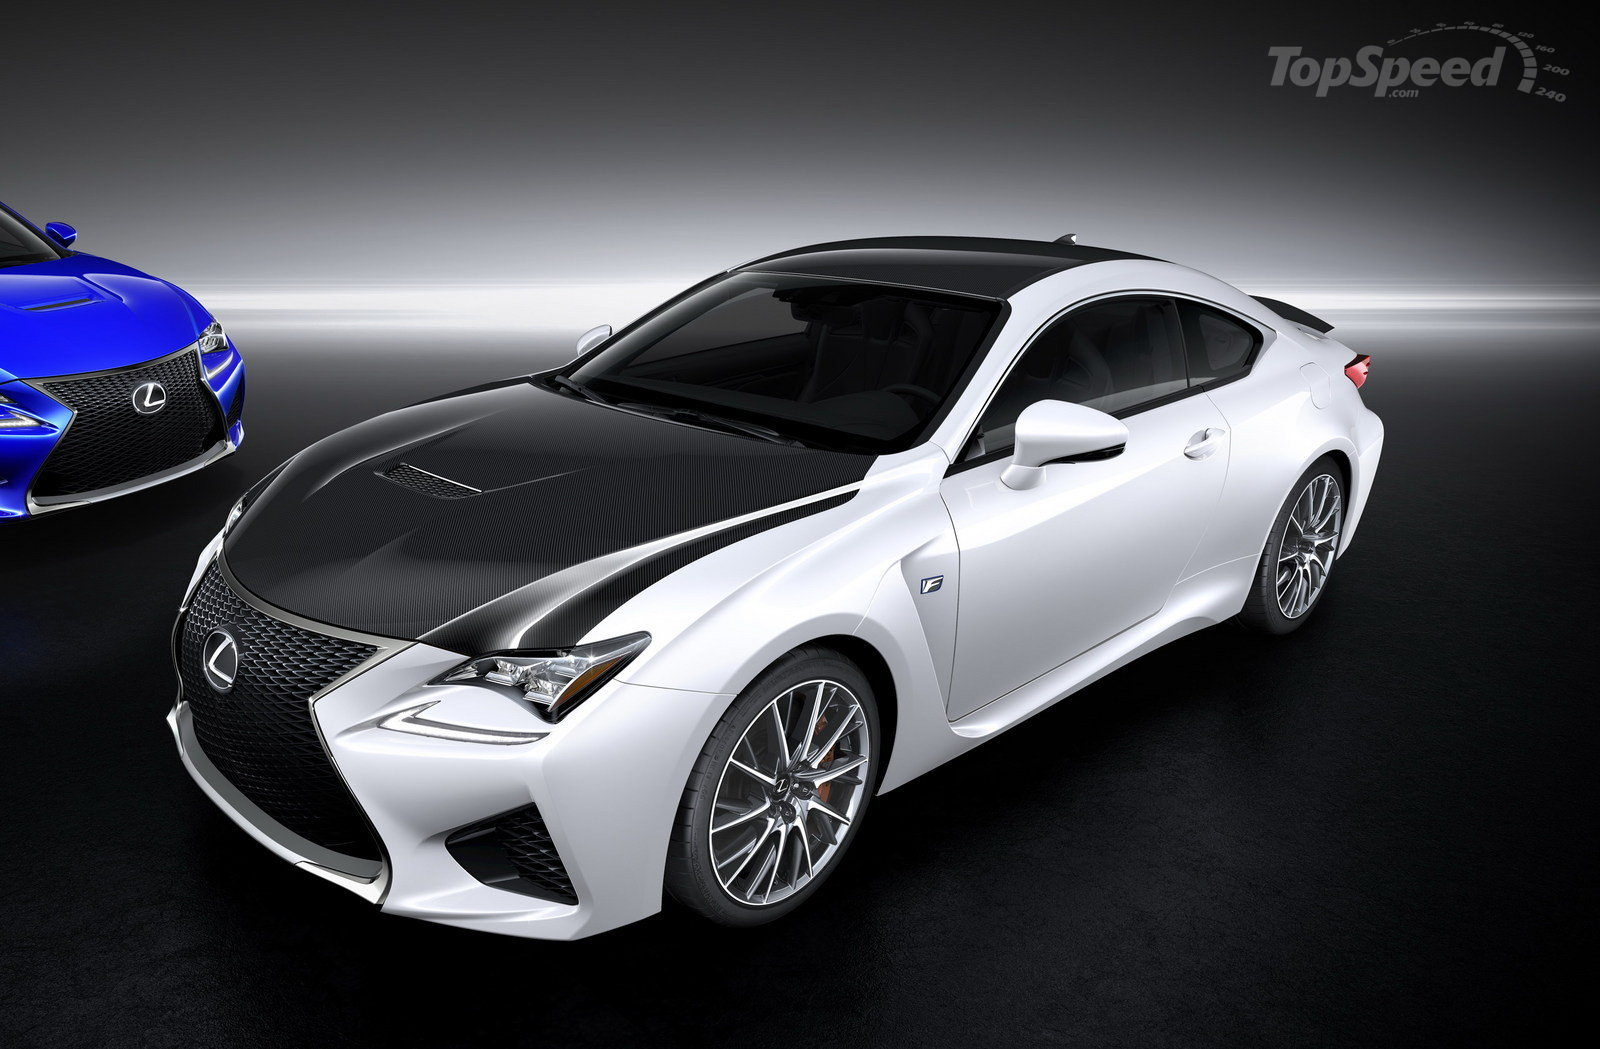 2015 Lexus Gs >> 2019 Lexus RC F | Car Photos Catalog 2019